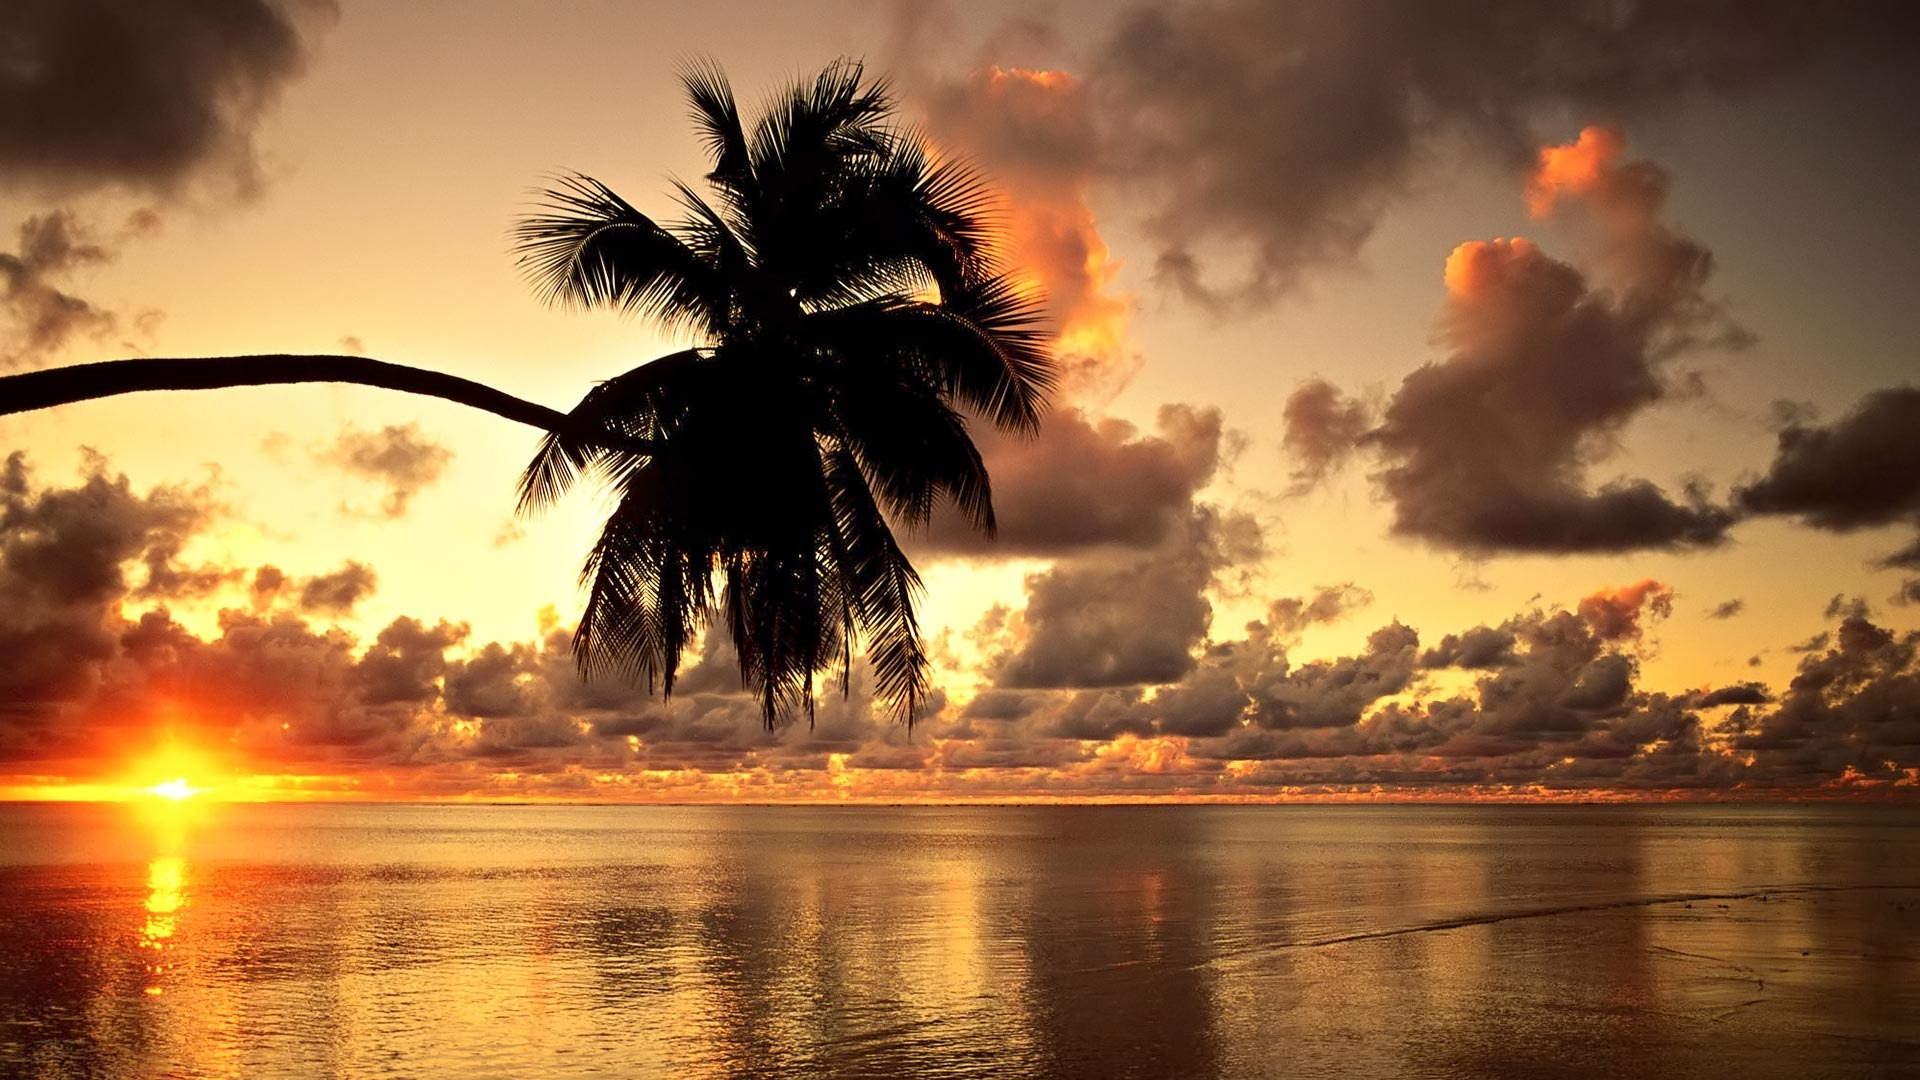 Hd Tropical Island Beach Paradise Wallpapers And Backgrounds: 1080P Beach Wallpaper